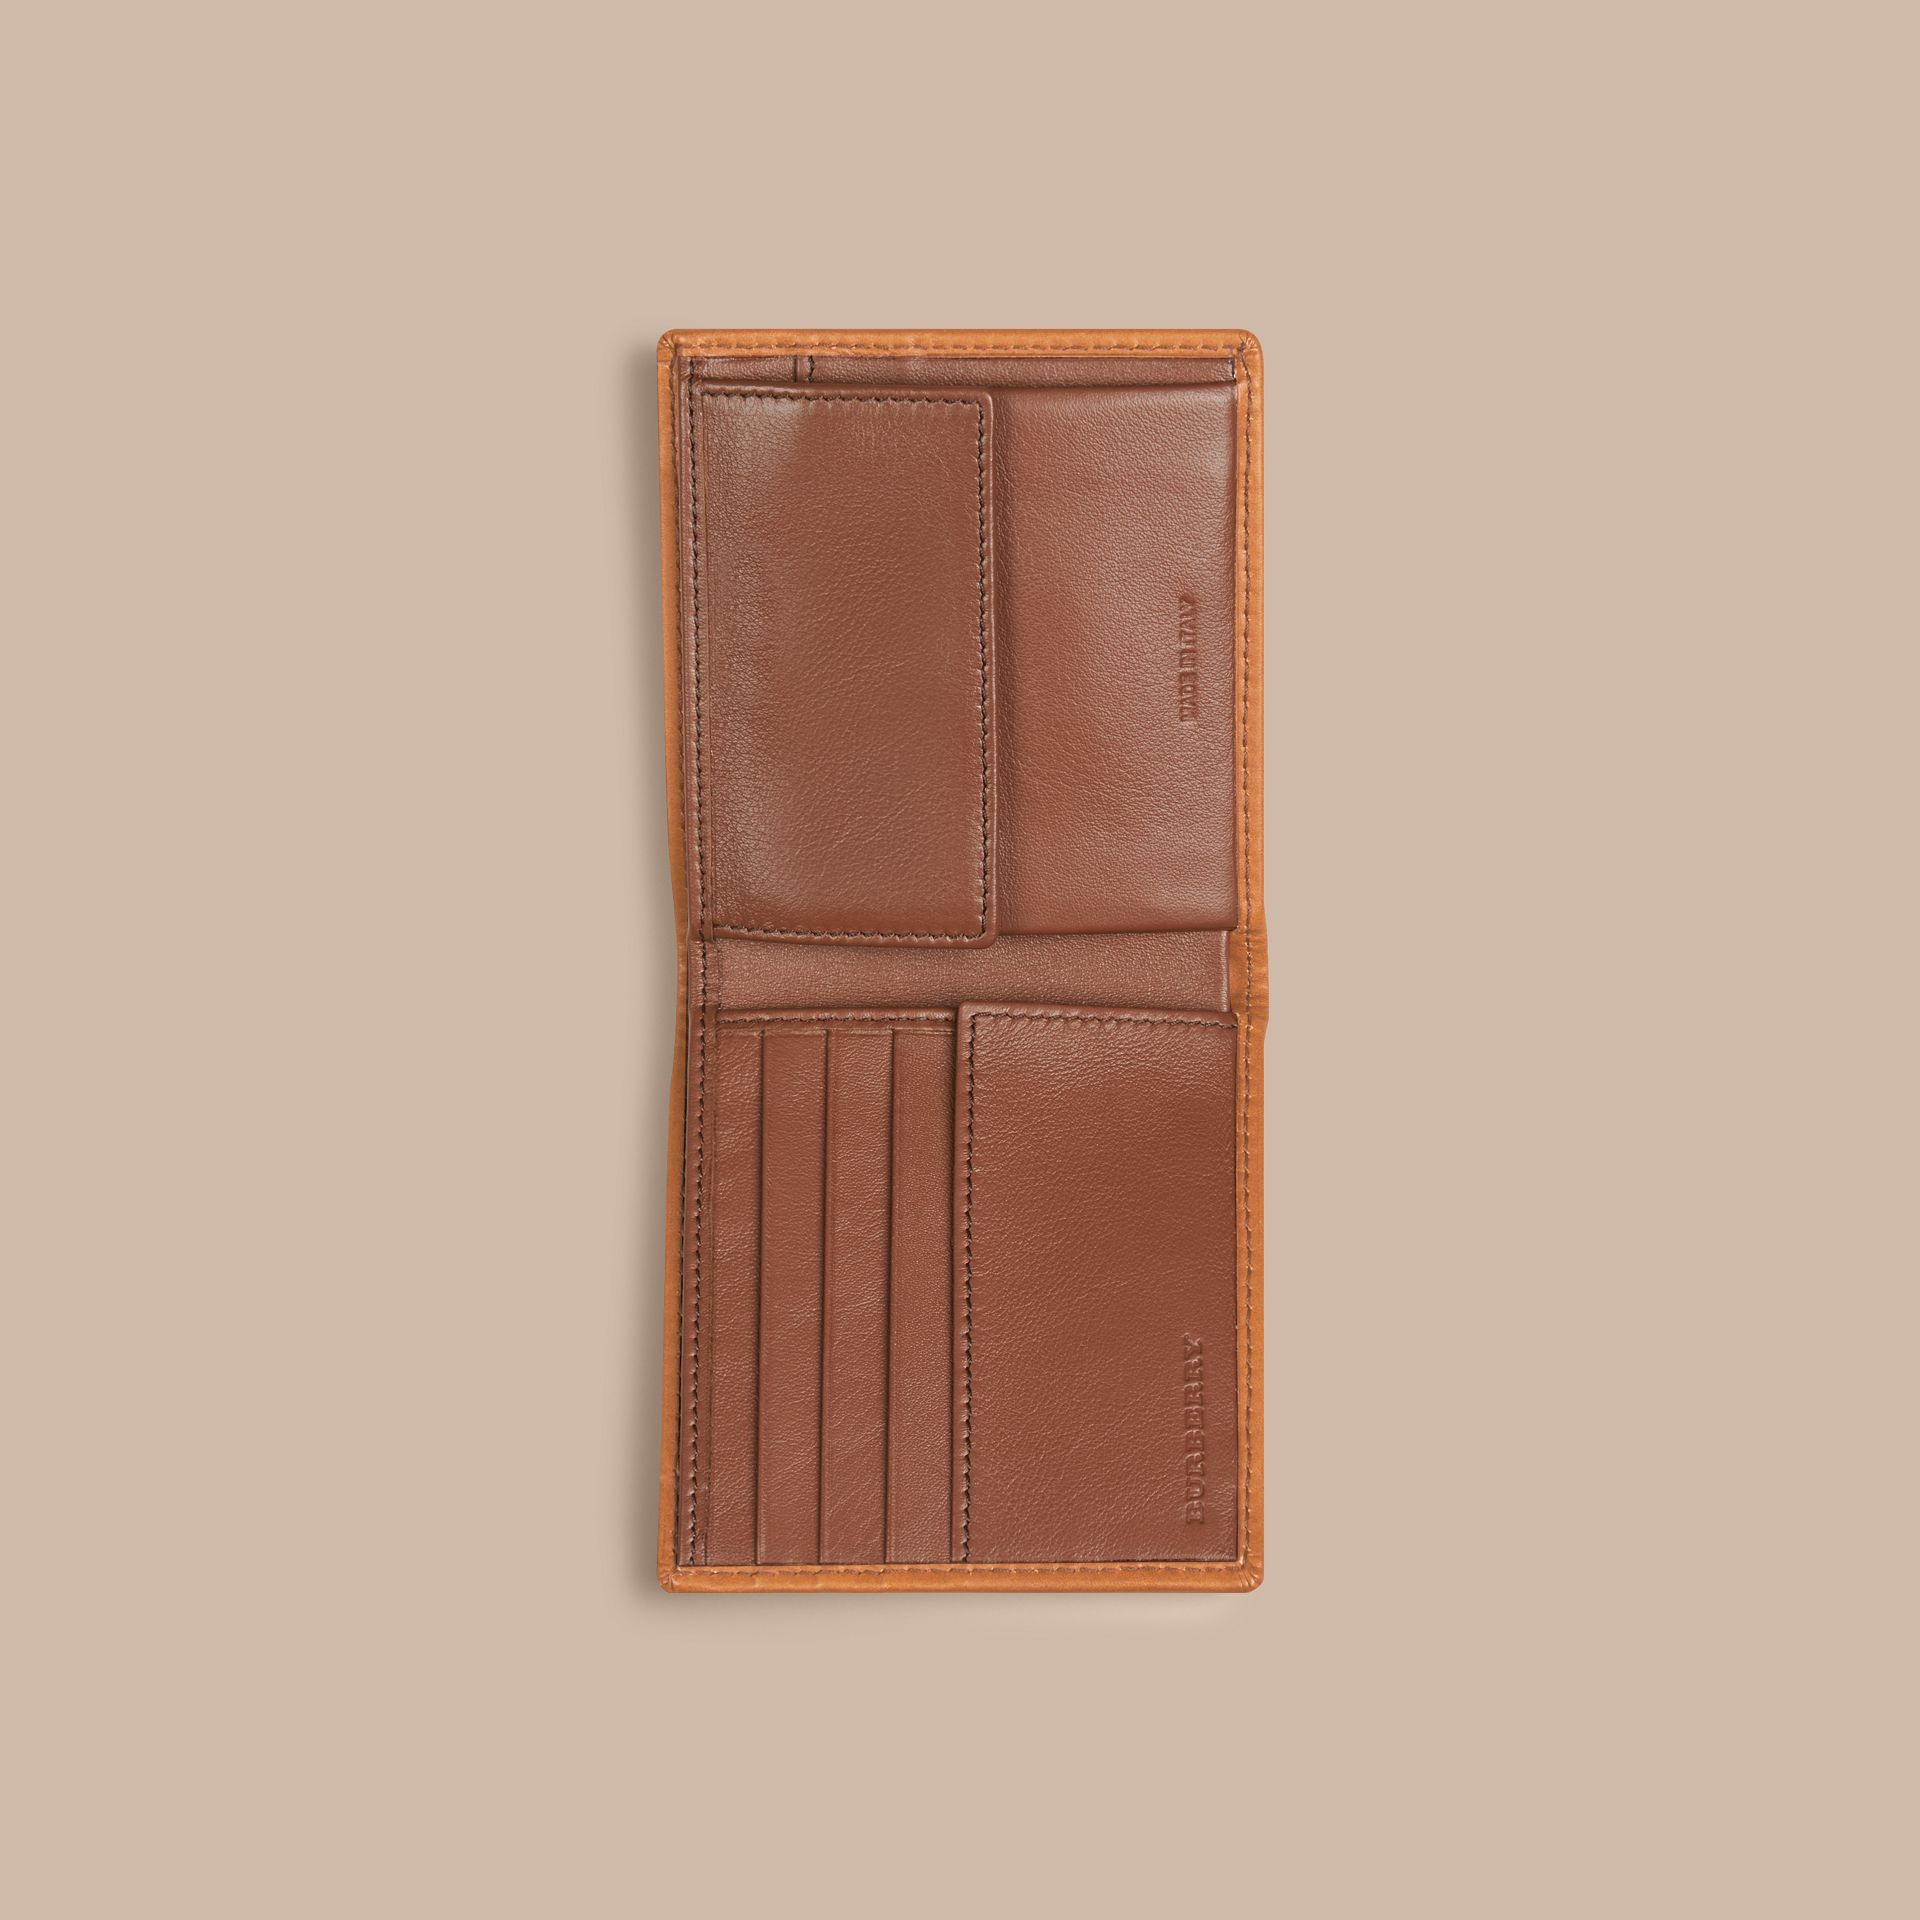 Horseferry Check International Bifold Coin Wallet in Tan - Men | Burberry - gallery image 3